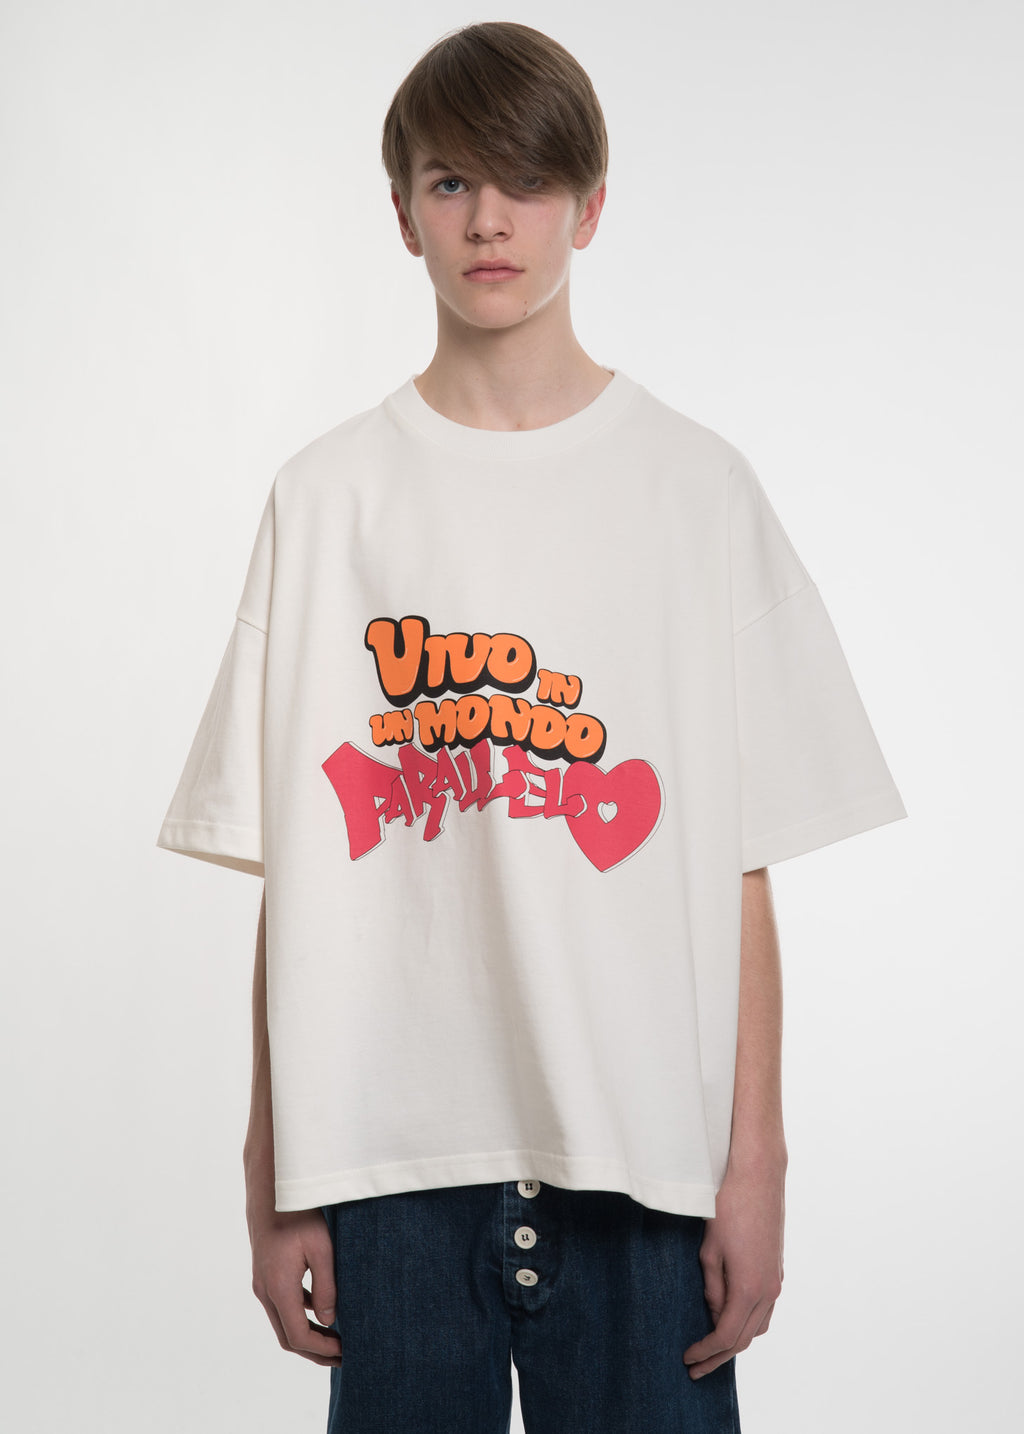 White Oversized Vivo T-Shirt